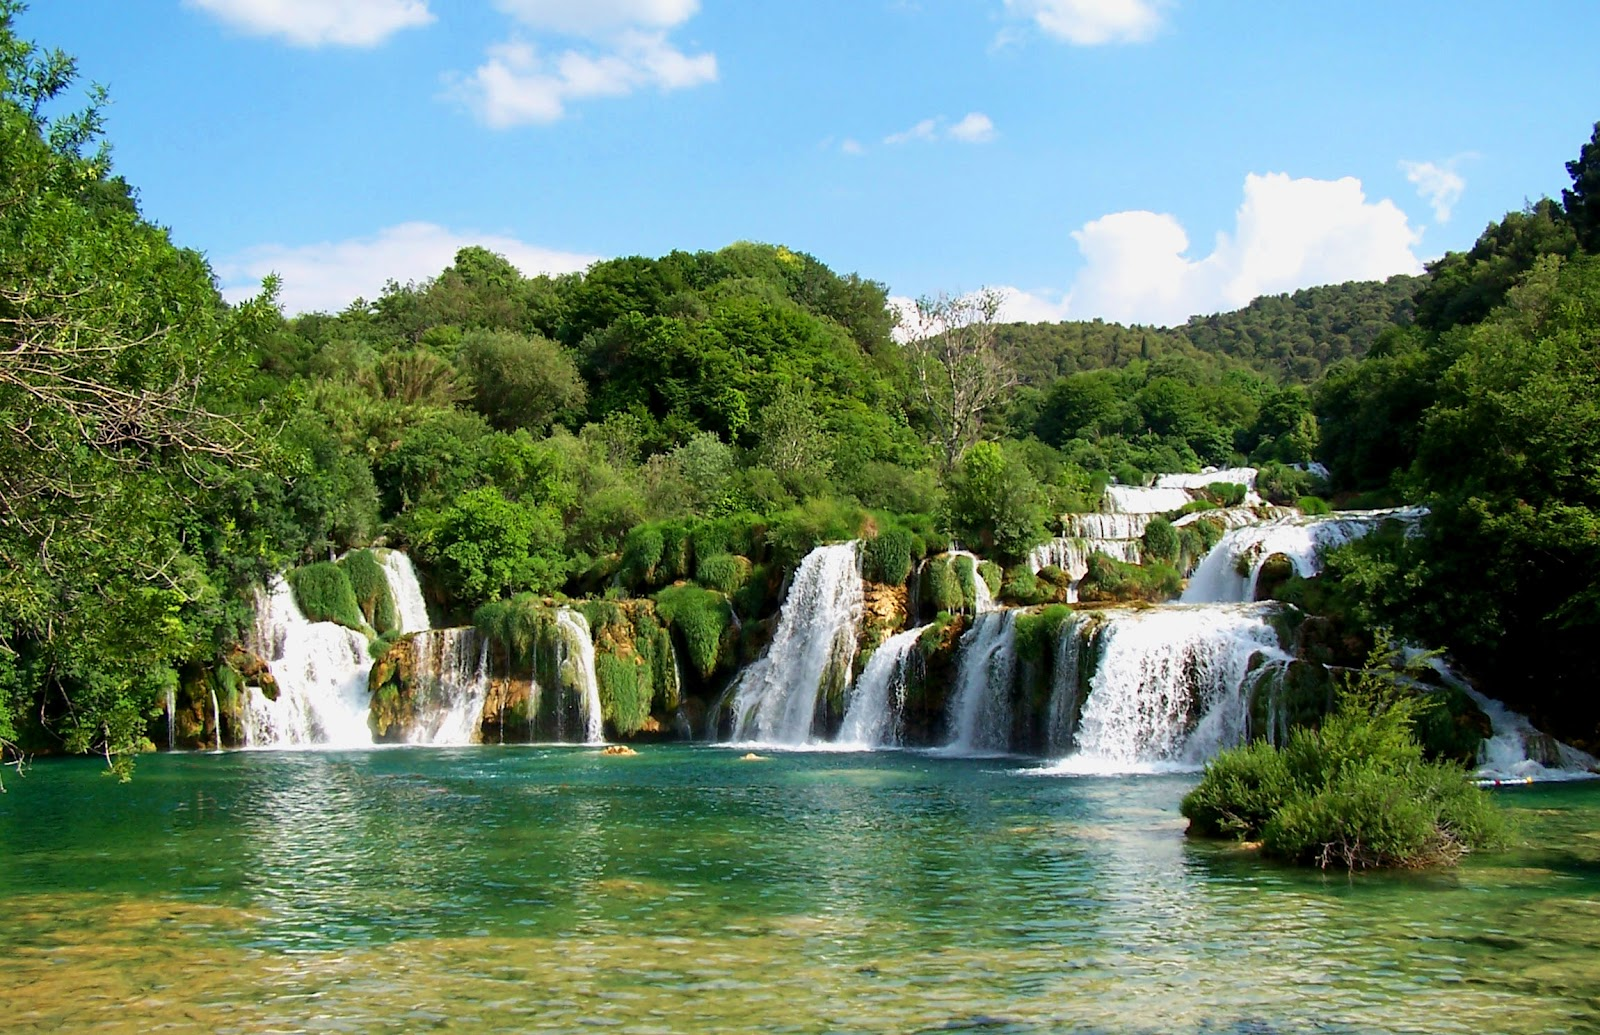 wide waterfall white foamy water going into crystal clear, secluded emerald lake, surrounded by trees. Sunny day in krka national park croatia